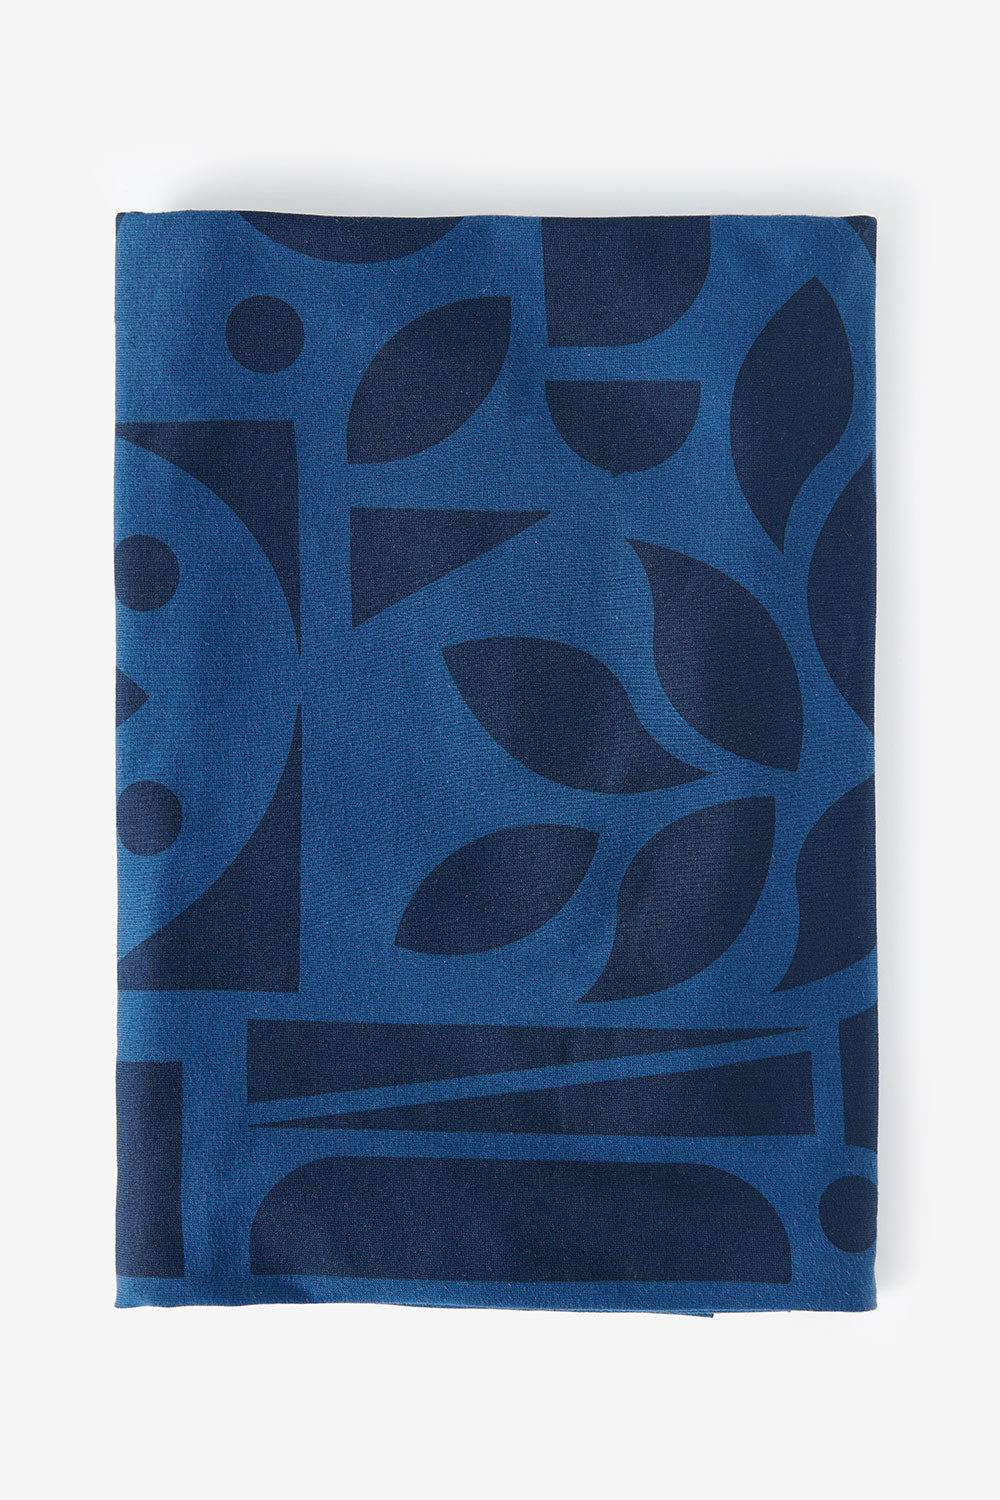 The School of Making Abstract Bundle 100% Organic Cotton Fabric and Pattern in Blue